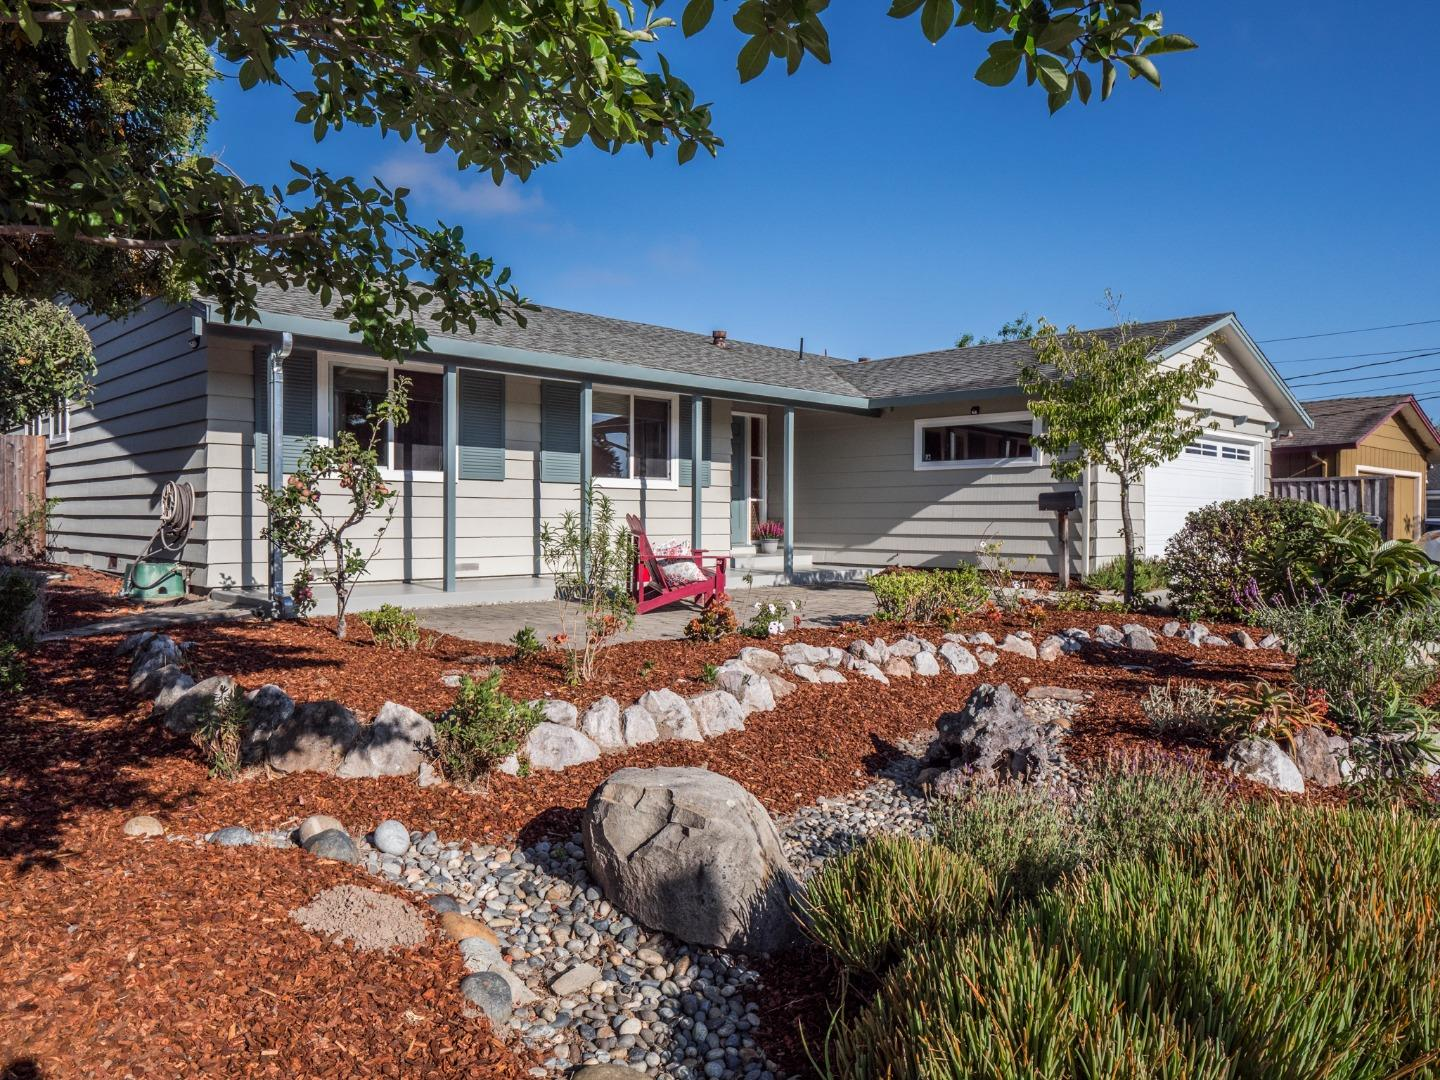 Just Listed in desirable Upper Santa Cruz Gardens Neighborhood!  Make this clean move in ready single level ranch style home your own.  Enjoy the light and bright open floorplan with updated kitchen and bathrooms.  Features include engineered maple wood floors, newer kitchen with quartz counter tops and island with built in gas range and oven, tons of natural light and a wood burning living room fireplace.  The living room sliding glass doors lead out to the generously sized back yard which is fully fenced with lots of room for outside activities and raised planter boxes perfect for vegetable gardening.  There is a two car attached garage with new concrete driveway.  All appliances are included.  Super convenient mid town location close to shopping and amenities and a short walk to Santa Cruz Gardens Elementary School, Santa Cruz Gardens County Park, neighborhood community pool and miles of hiking trails in the nearby greenbelt.